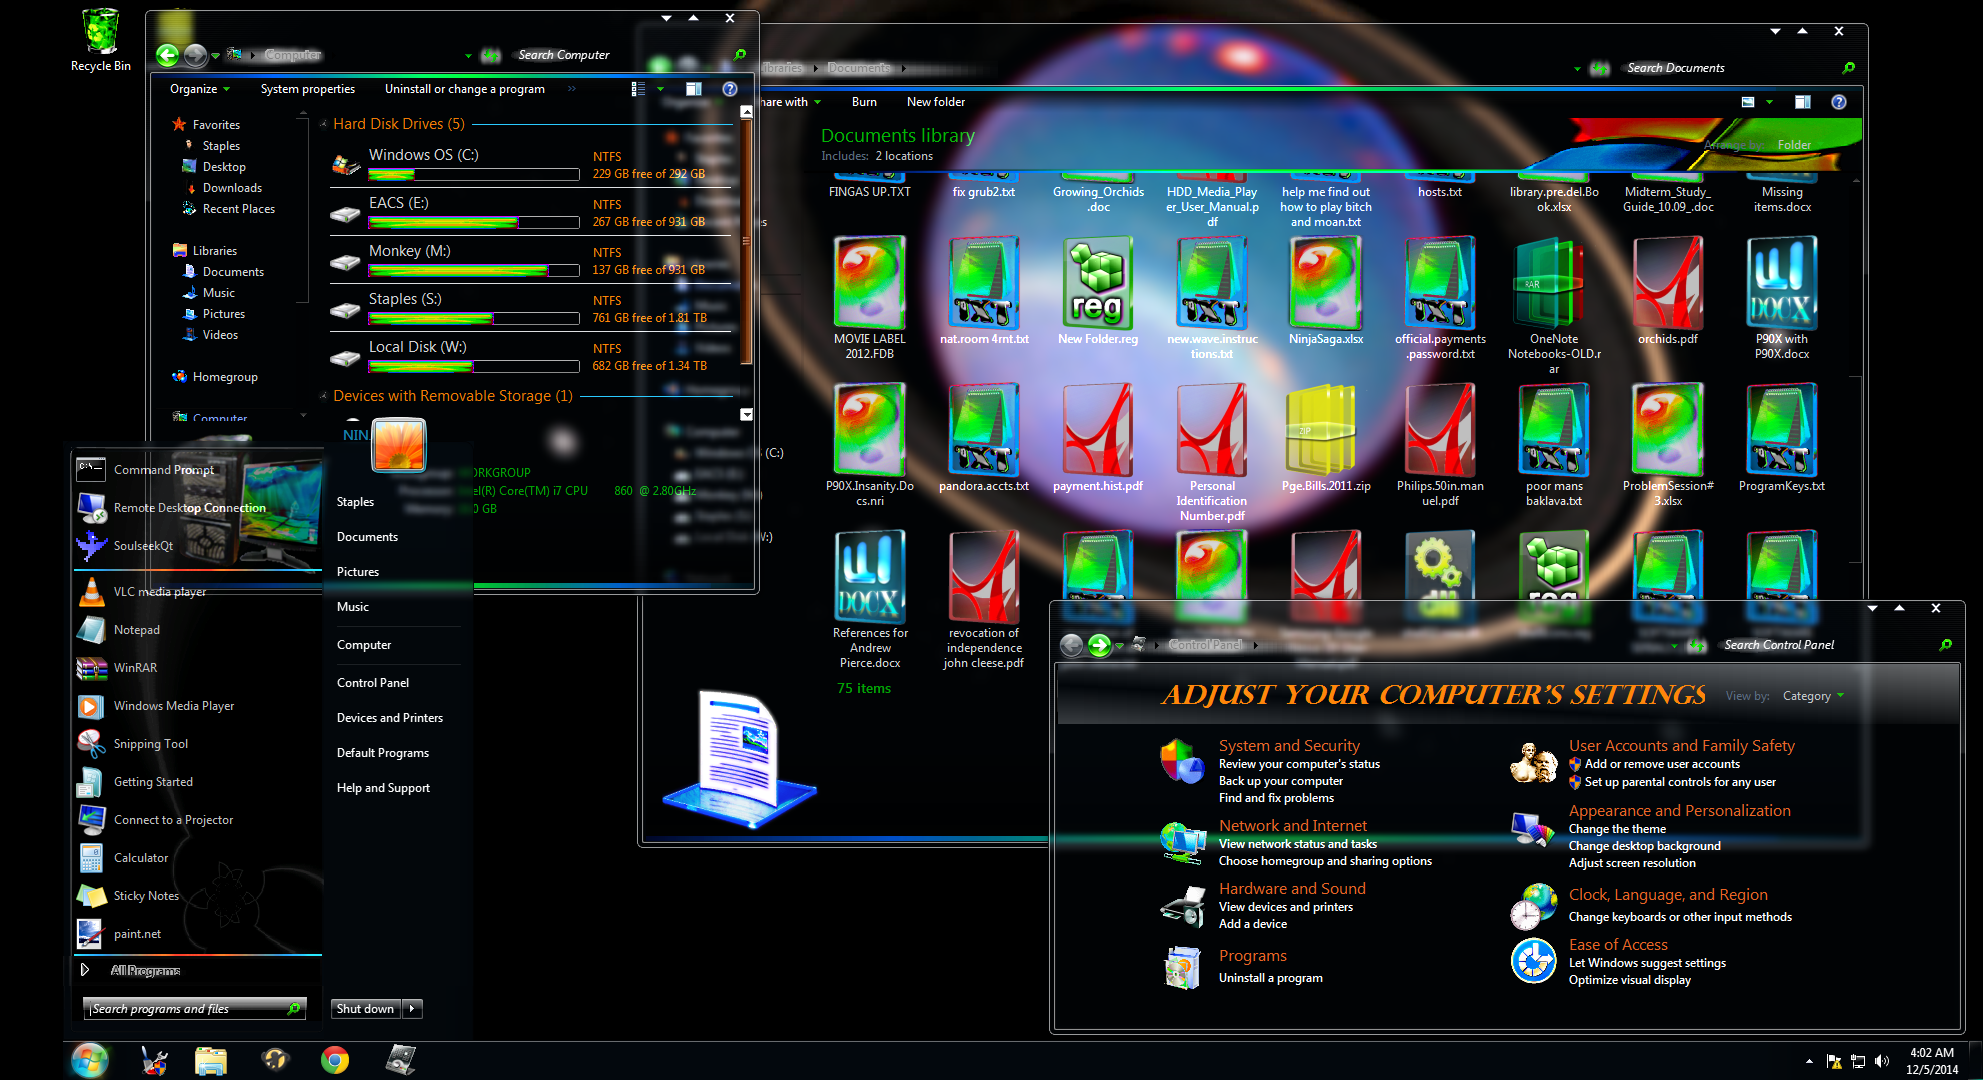 Windows 7 7 full transparency 64-bit THEME by KmCrct on DeviantArt